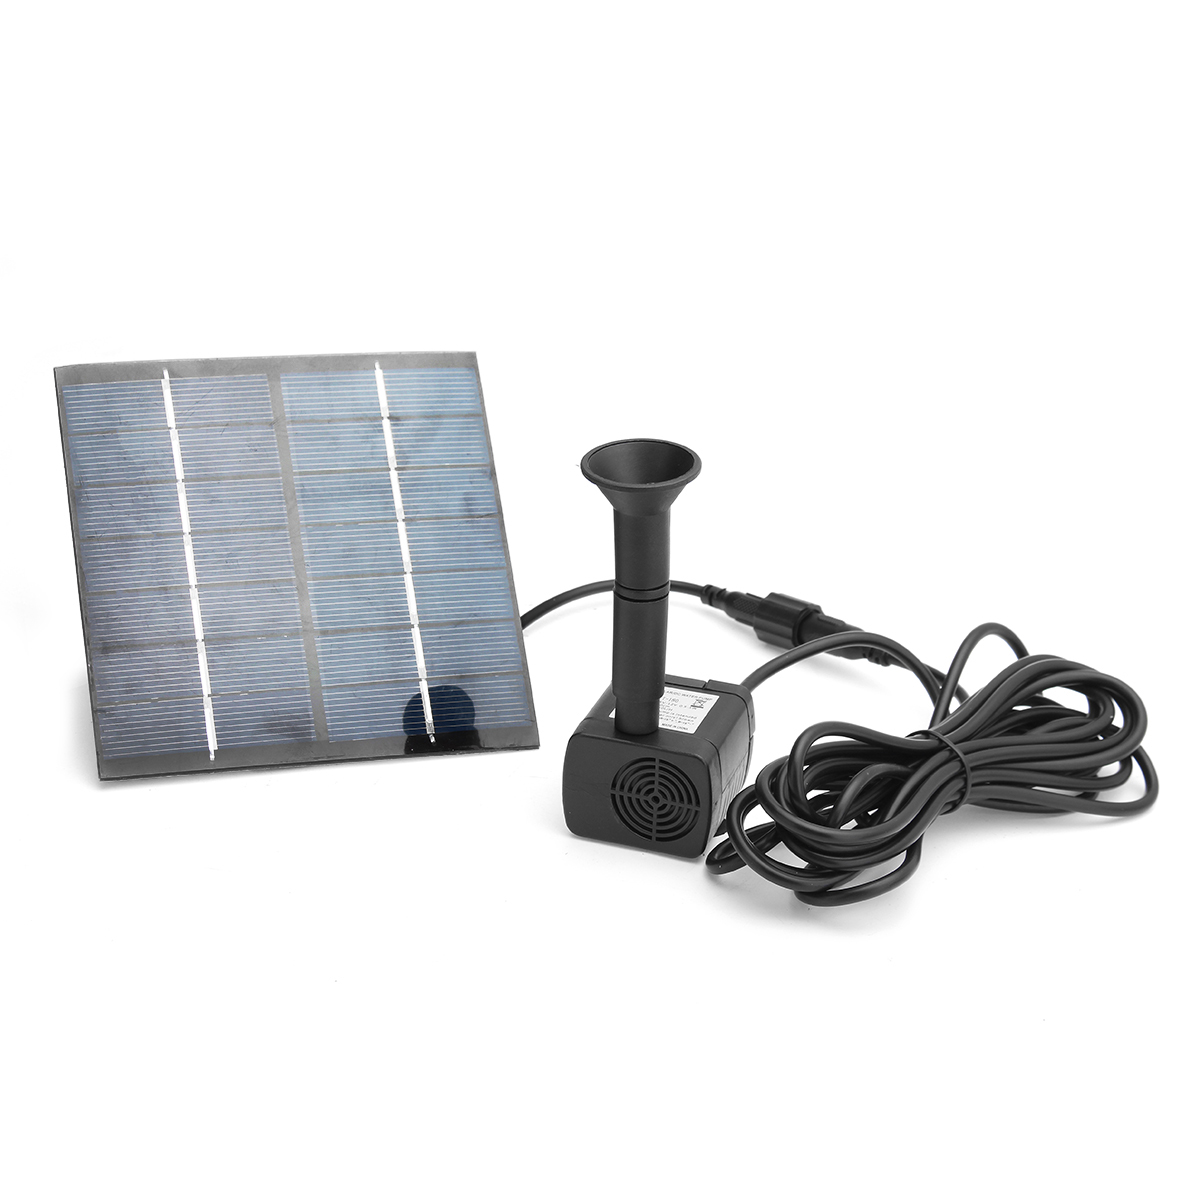 Solar Fountain Pump Jt 180 1 4w 7v Solar Panel Power Fountain Pump Outdoor Garden Pond Pool Submersible Water Pump Kit